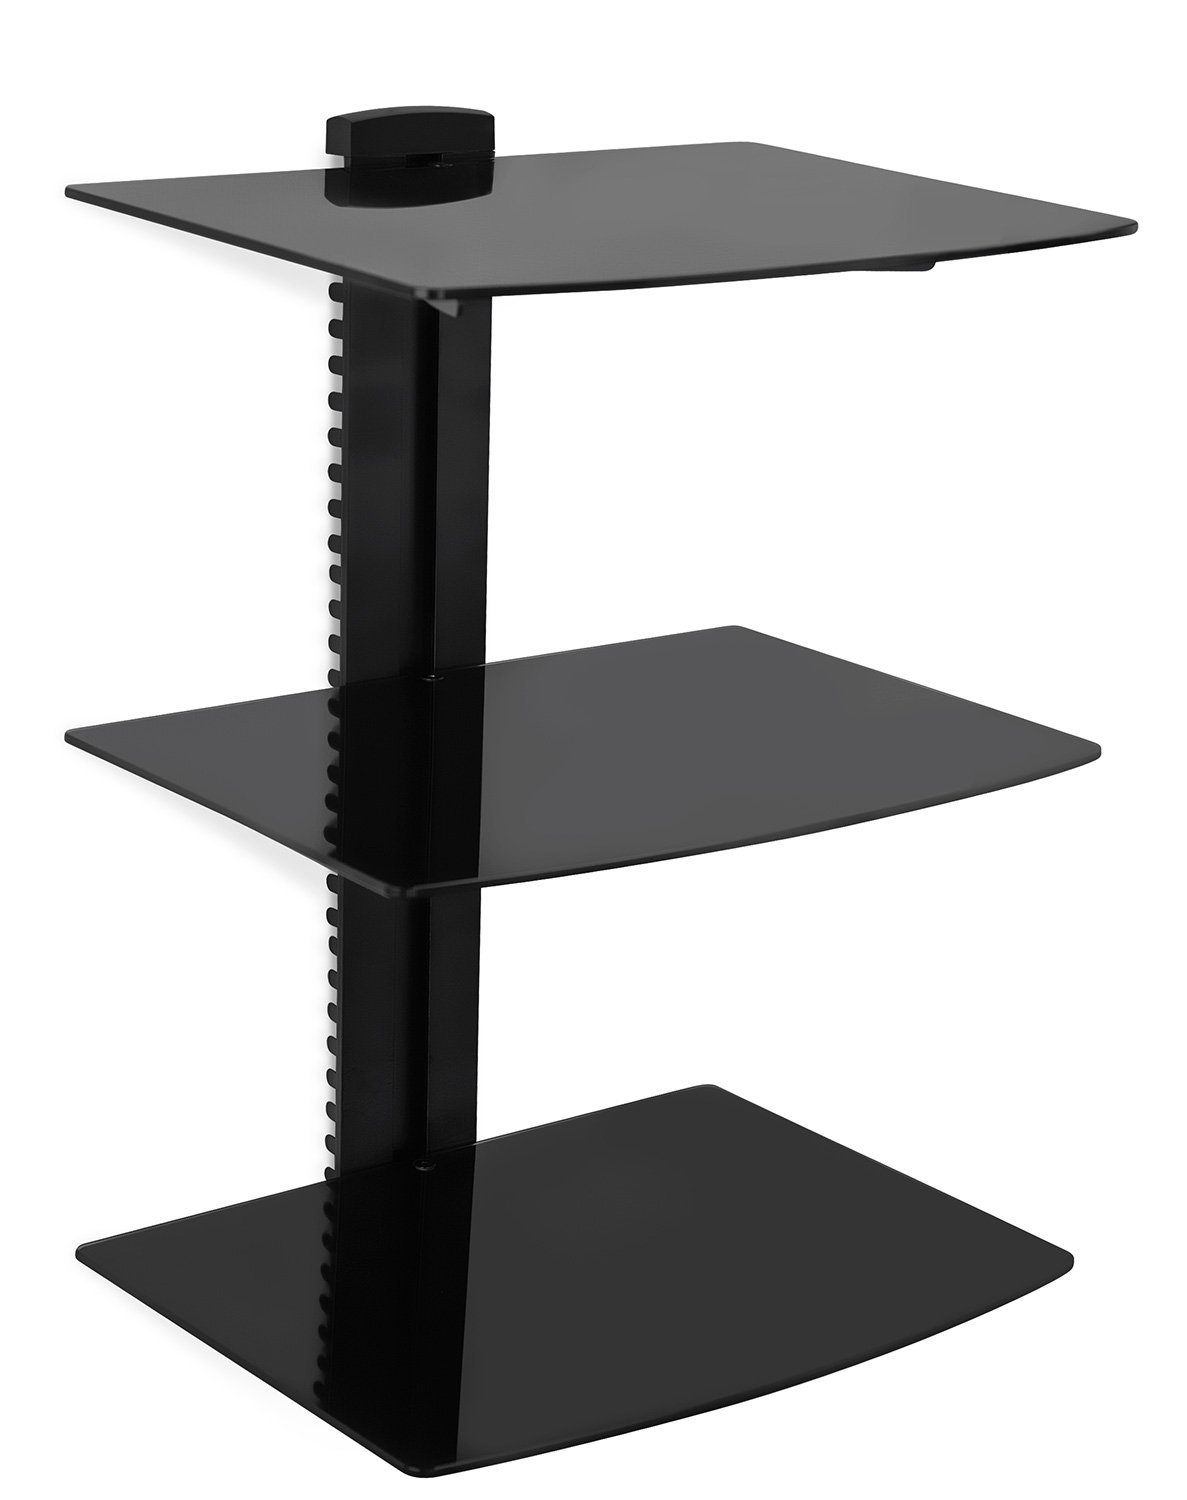 Amazon Mount It Wall Mounted Av Component Shelving System Pertaining To Black Glass Shelves Wall Mounted (Image 2 of 15)